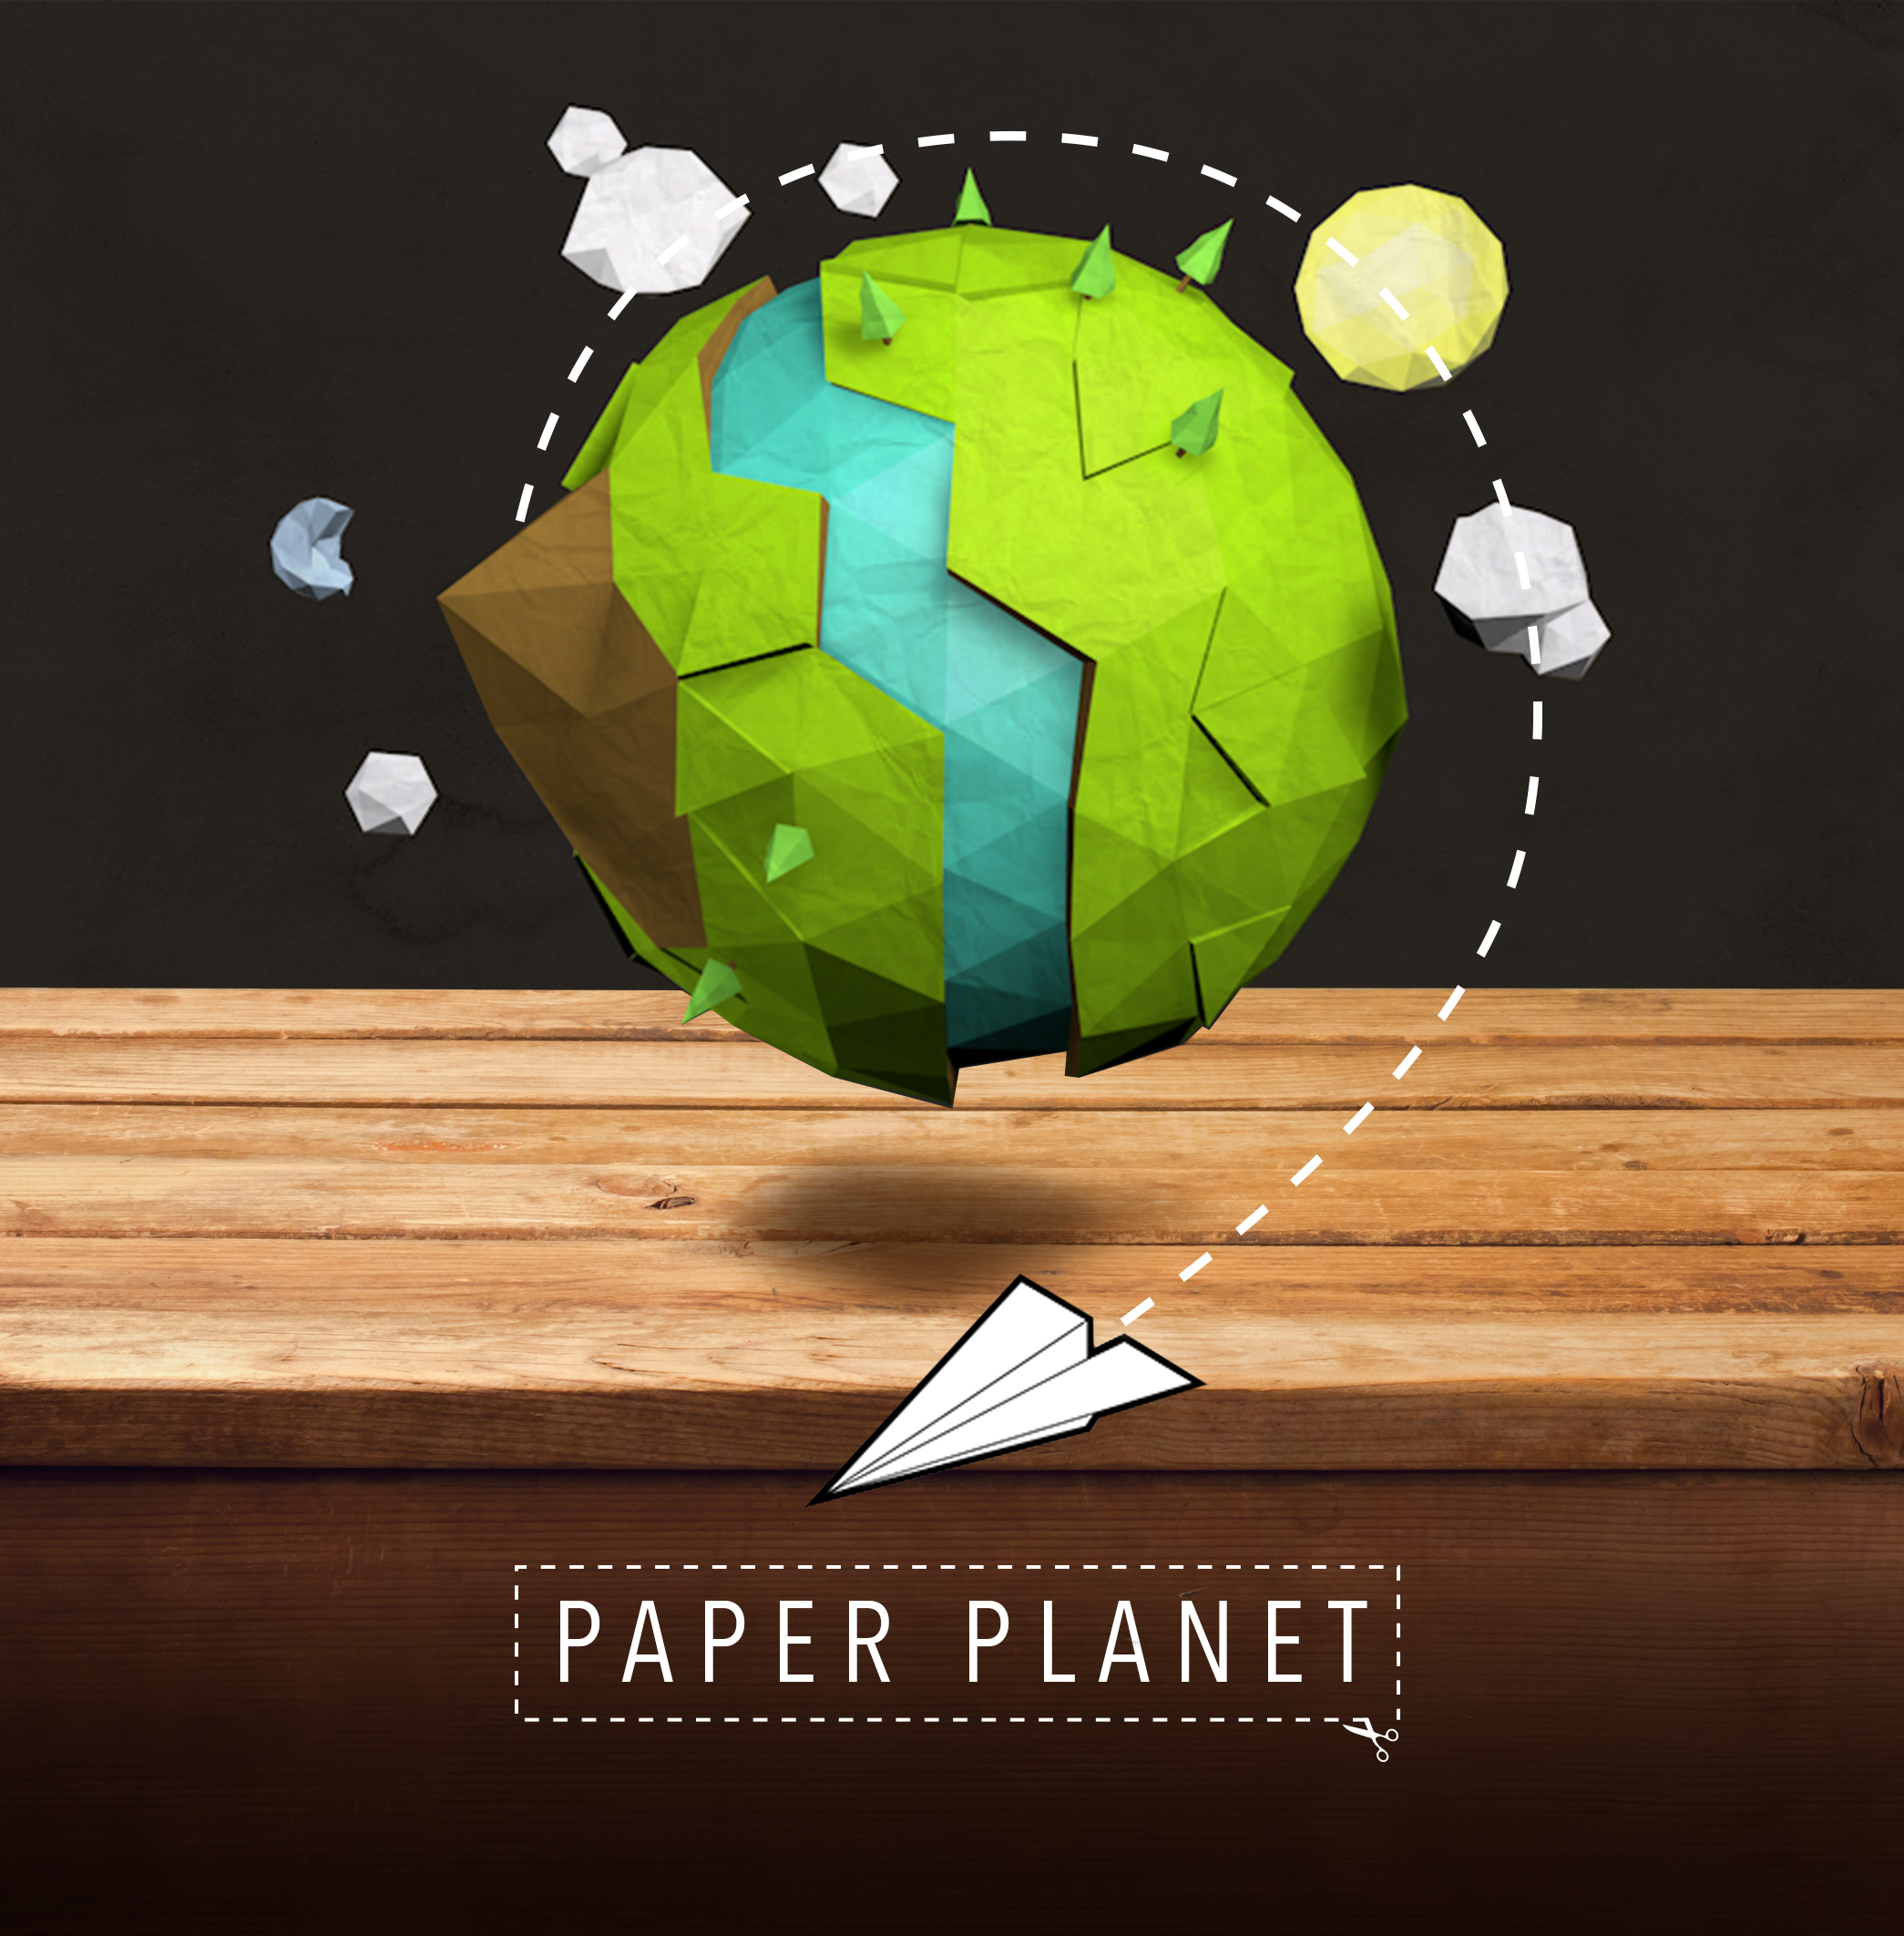 Paper planet – Rory McGinnity